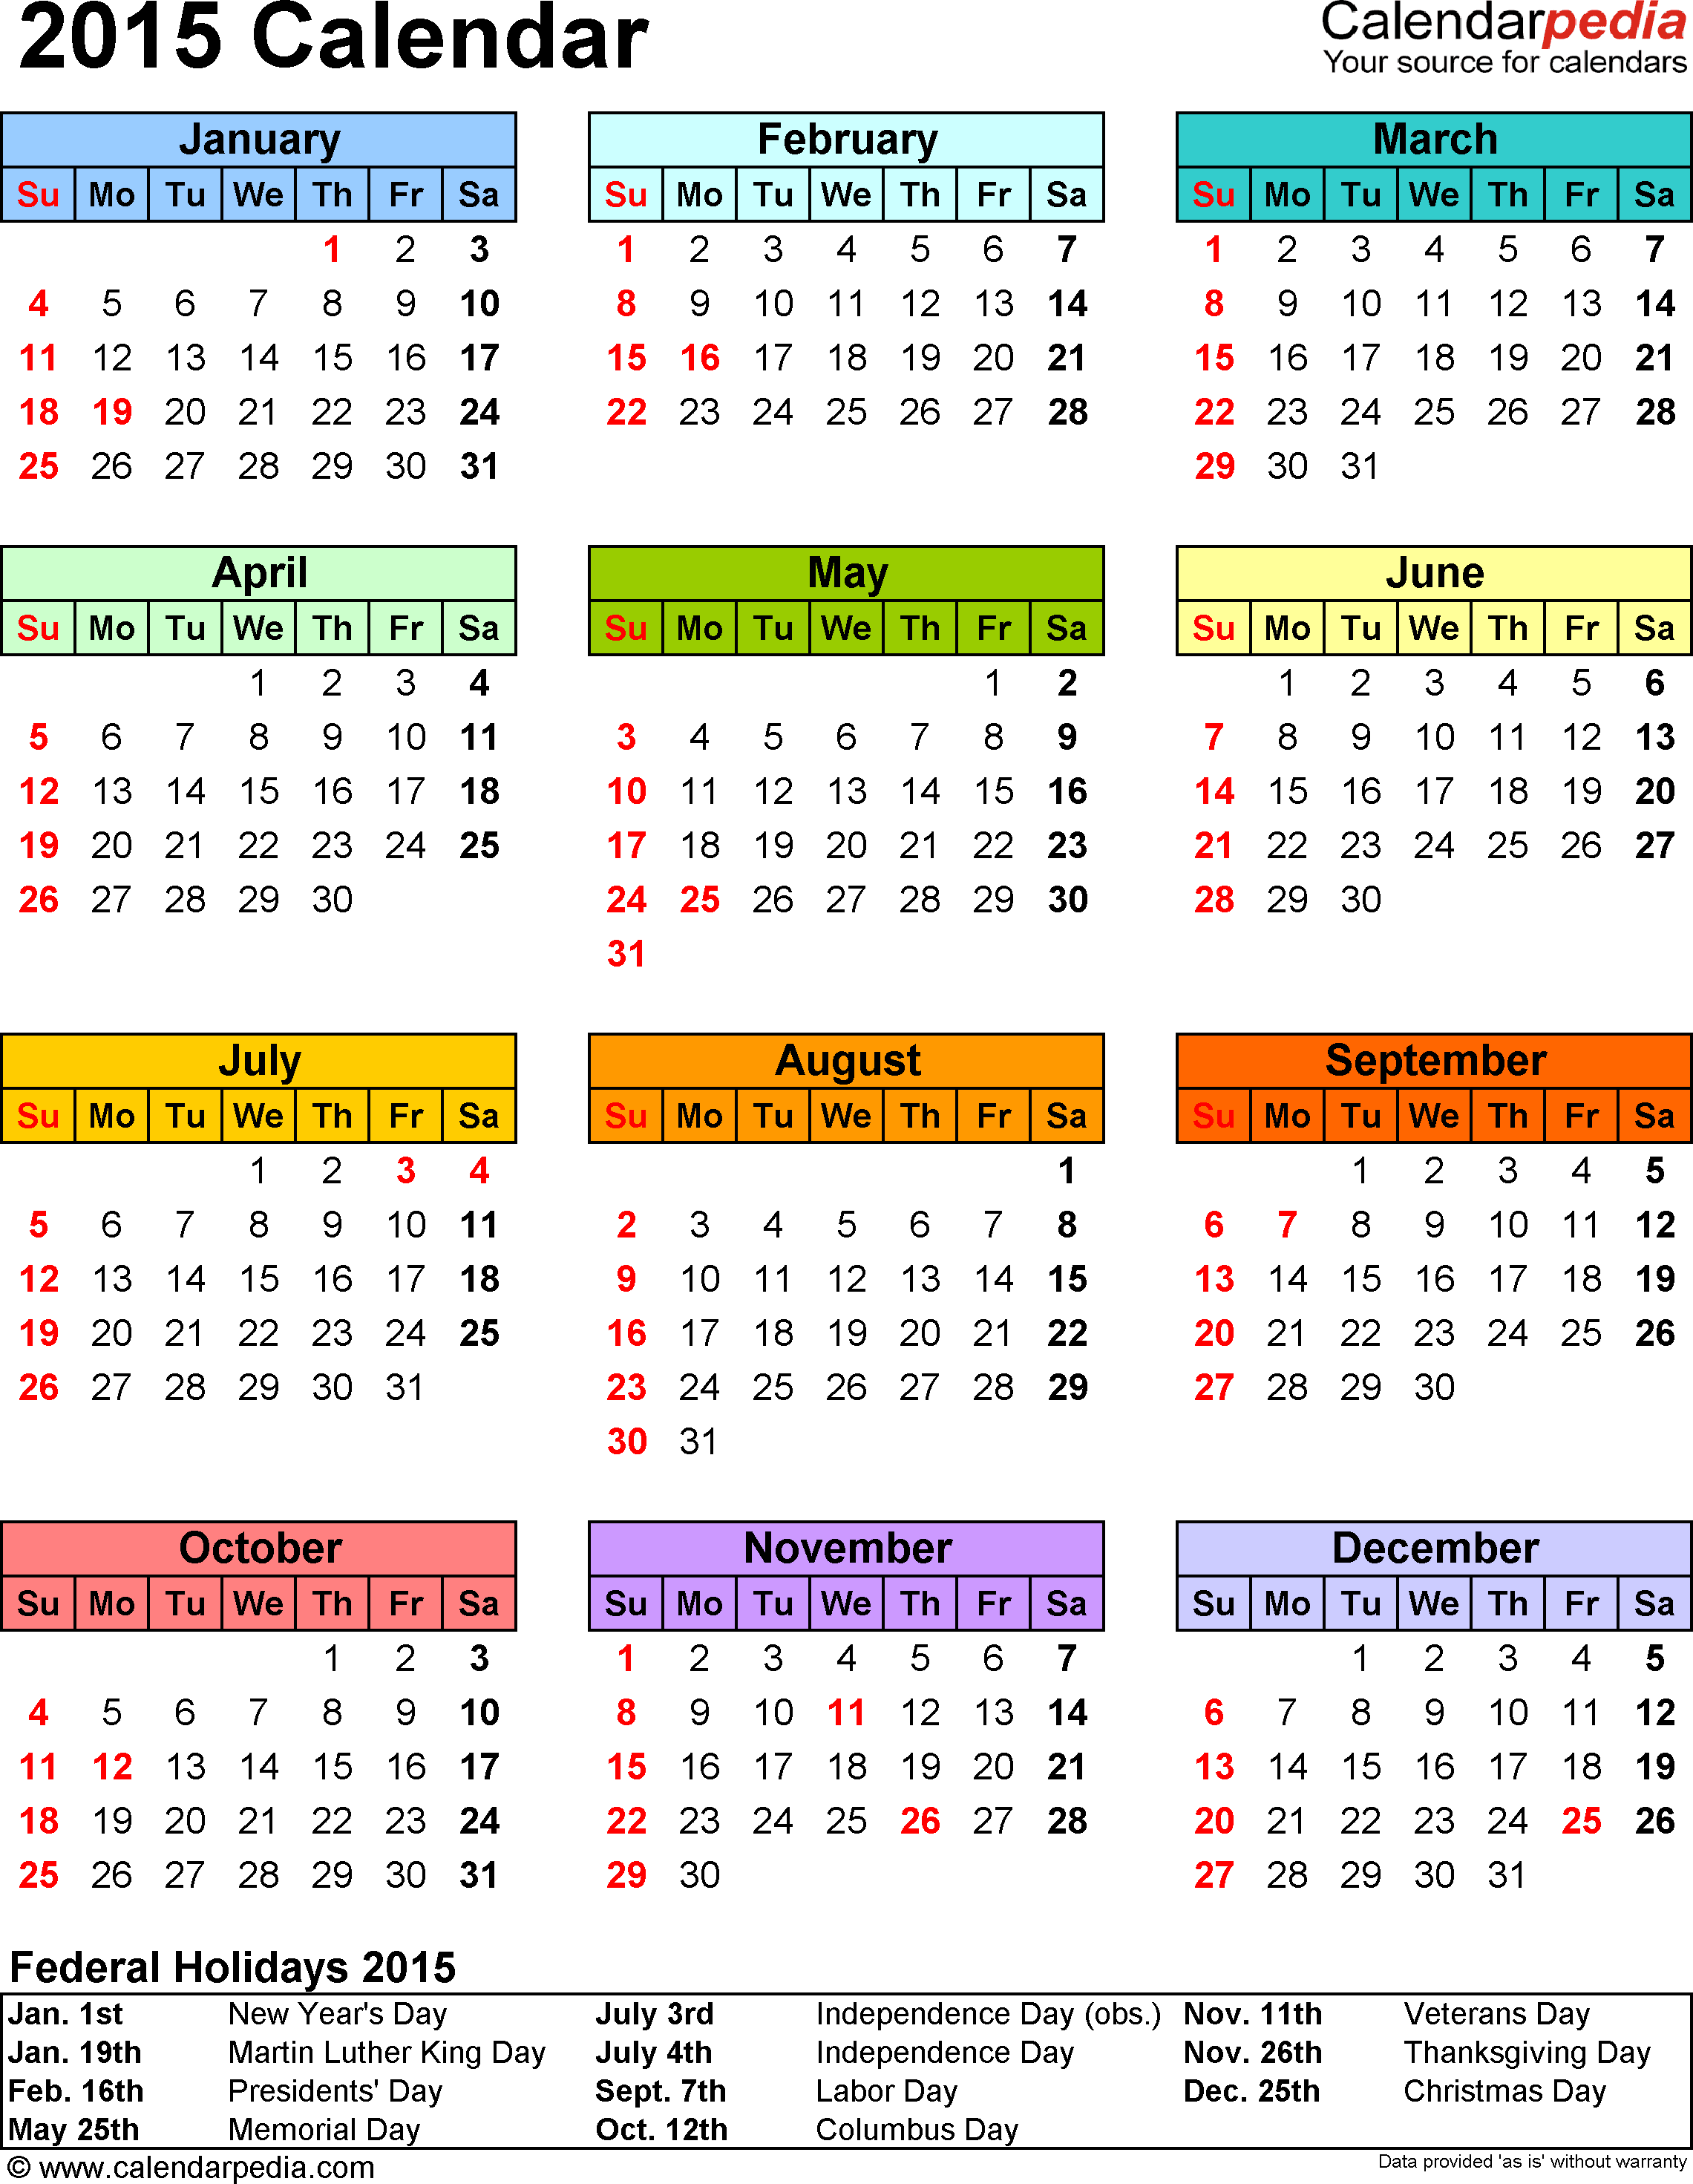 Template 13: 2015 Calendar for PDF, 1 page, portrait orientation, in color